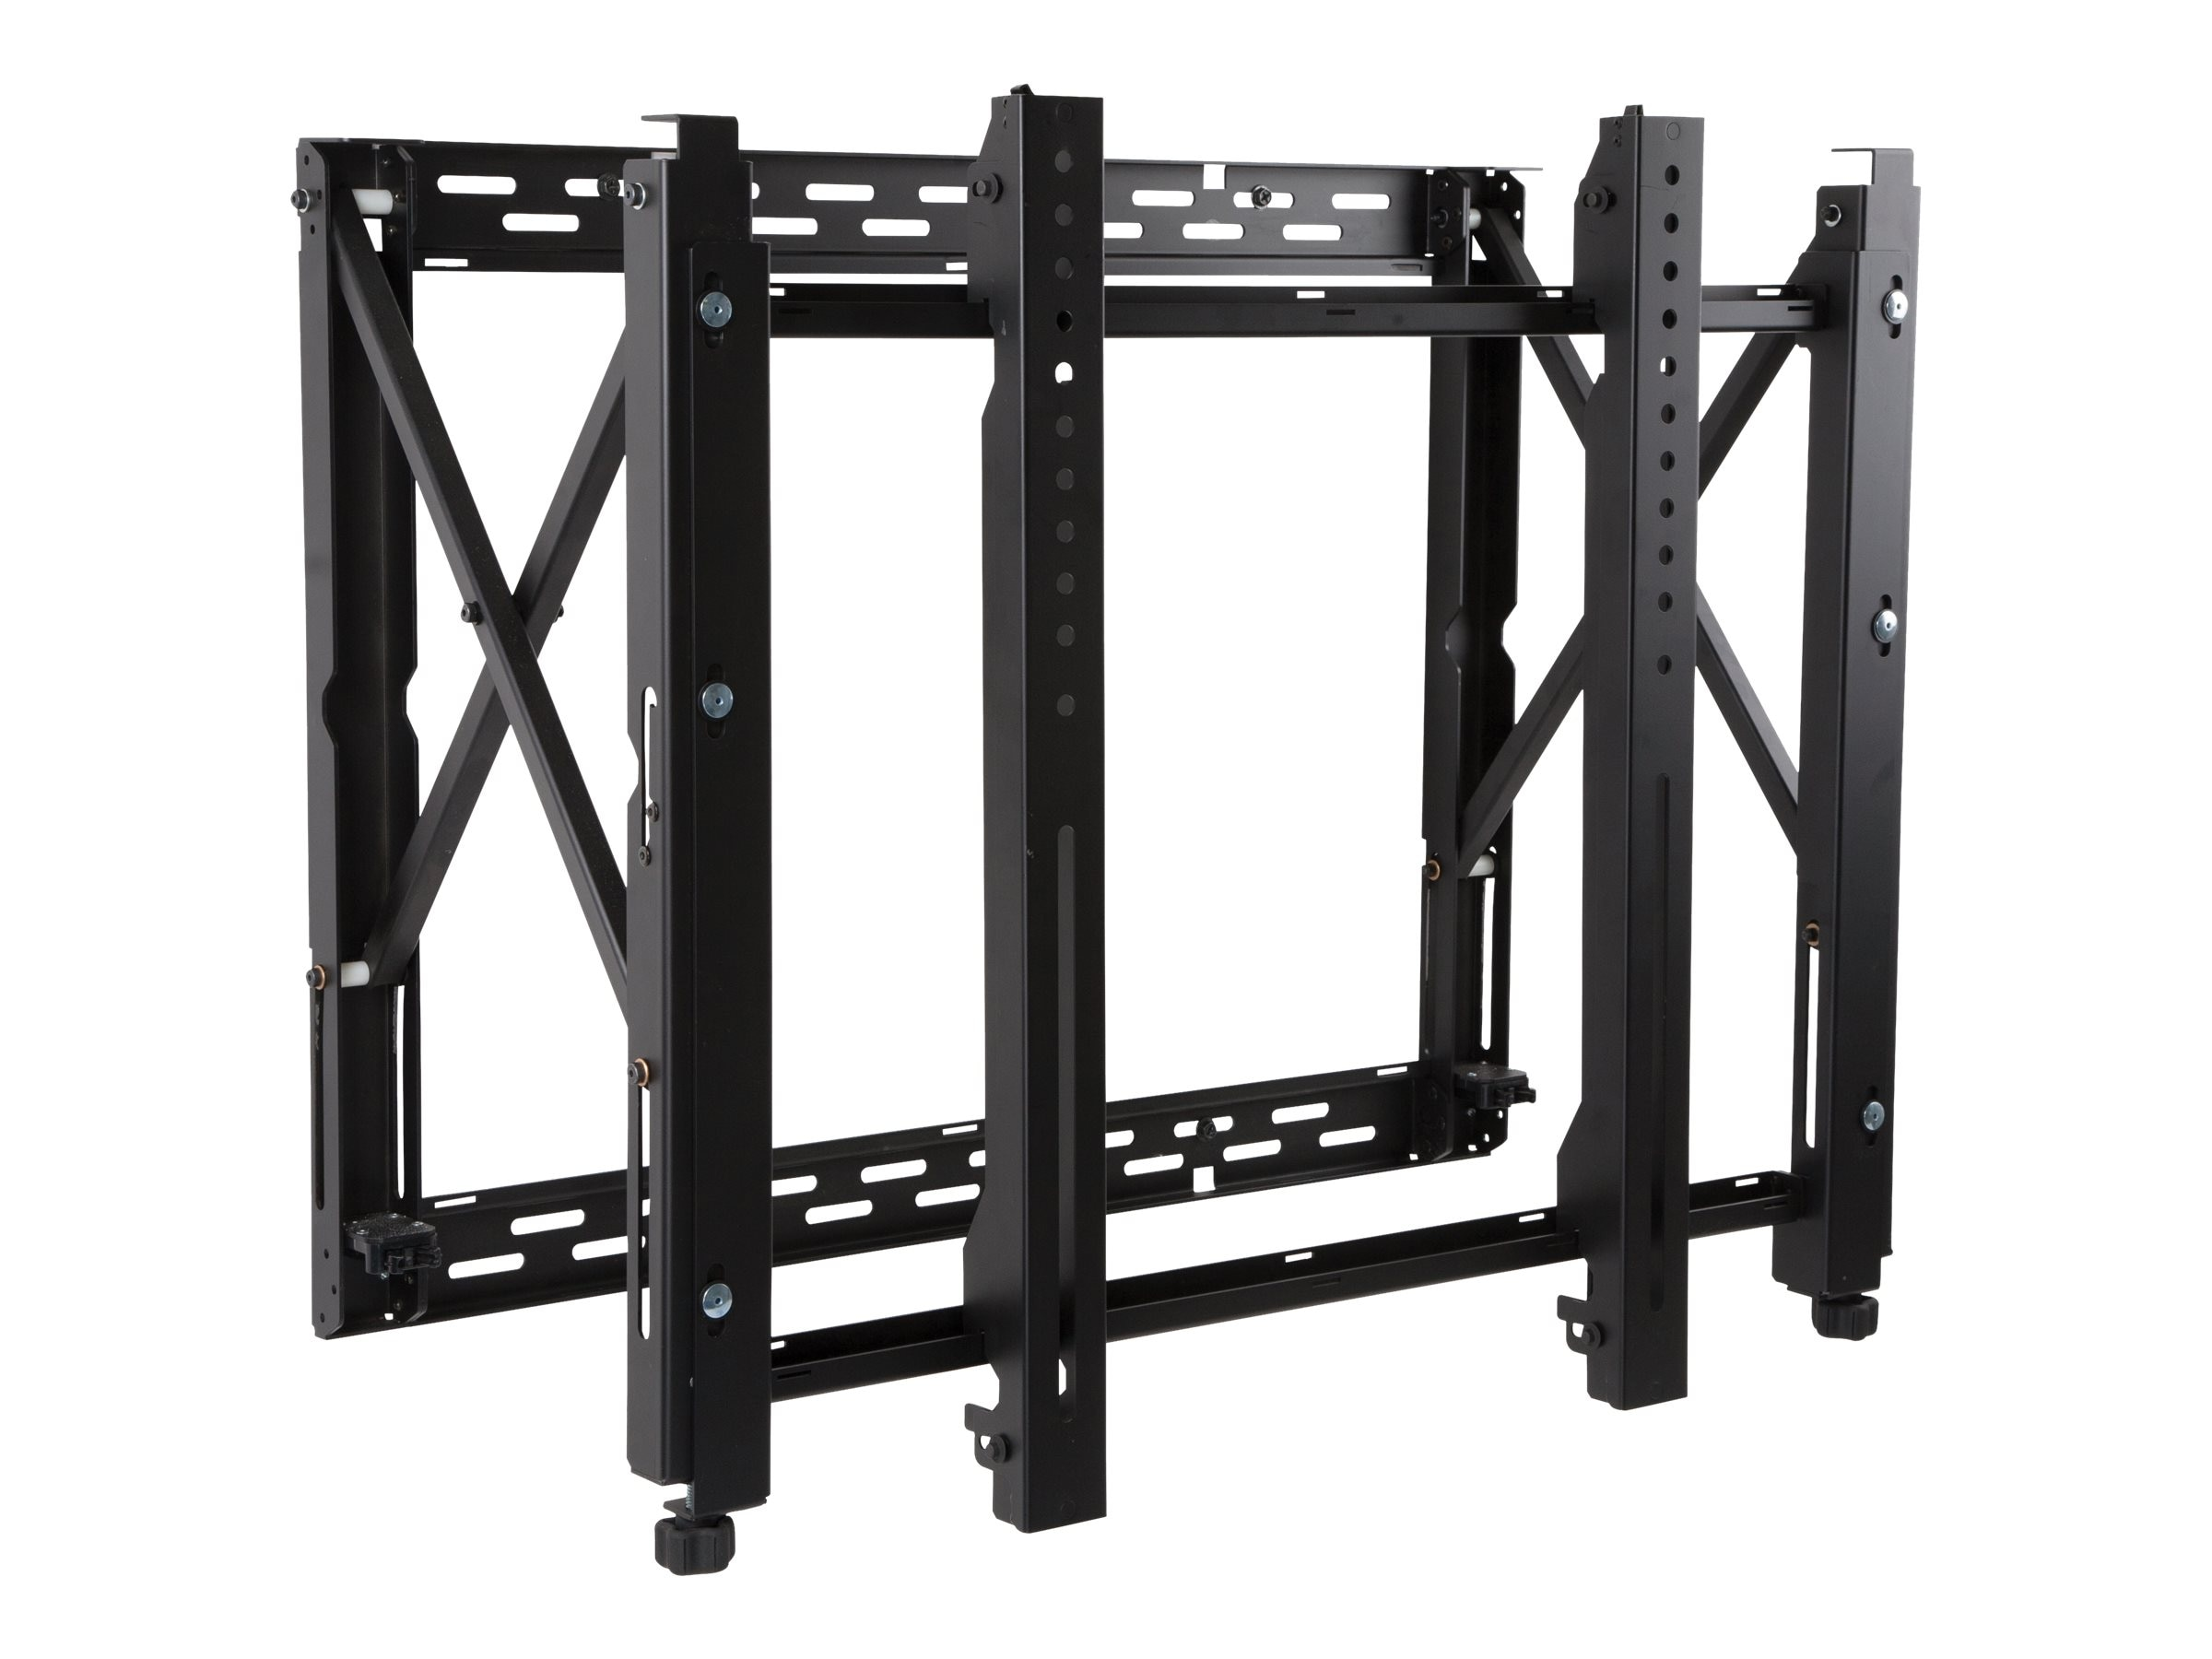 Peerless Full Service Video Wall Mount with Quick Release for 65-95 Displays, DS-VW795-QR